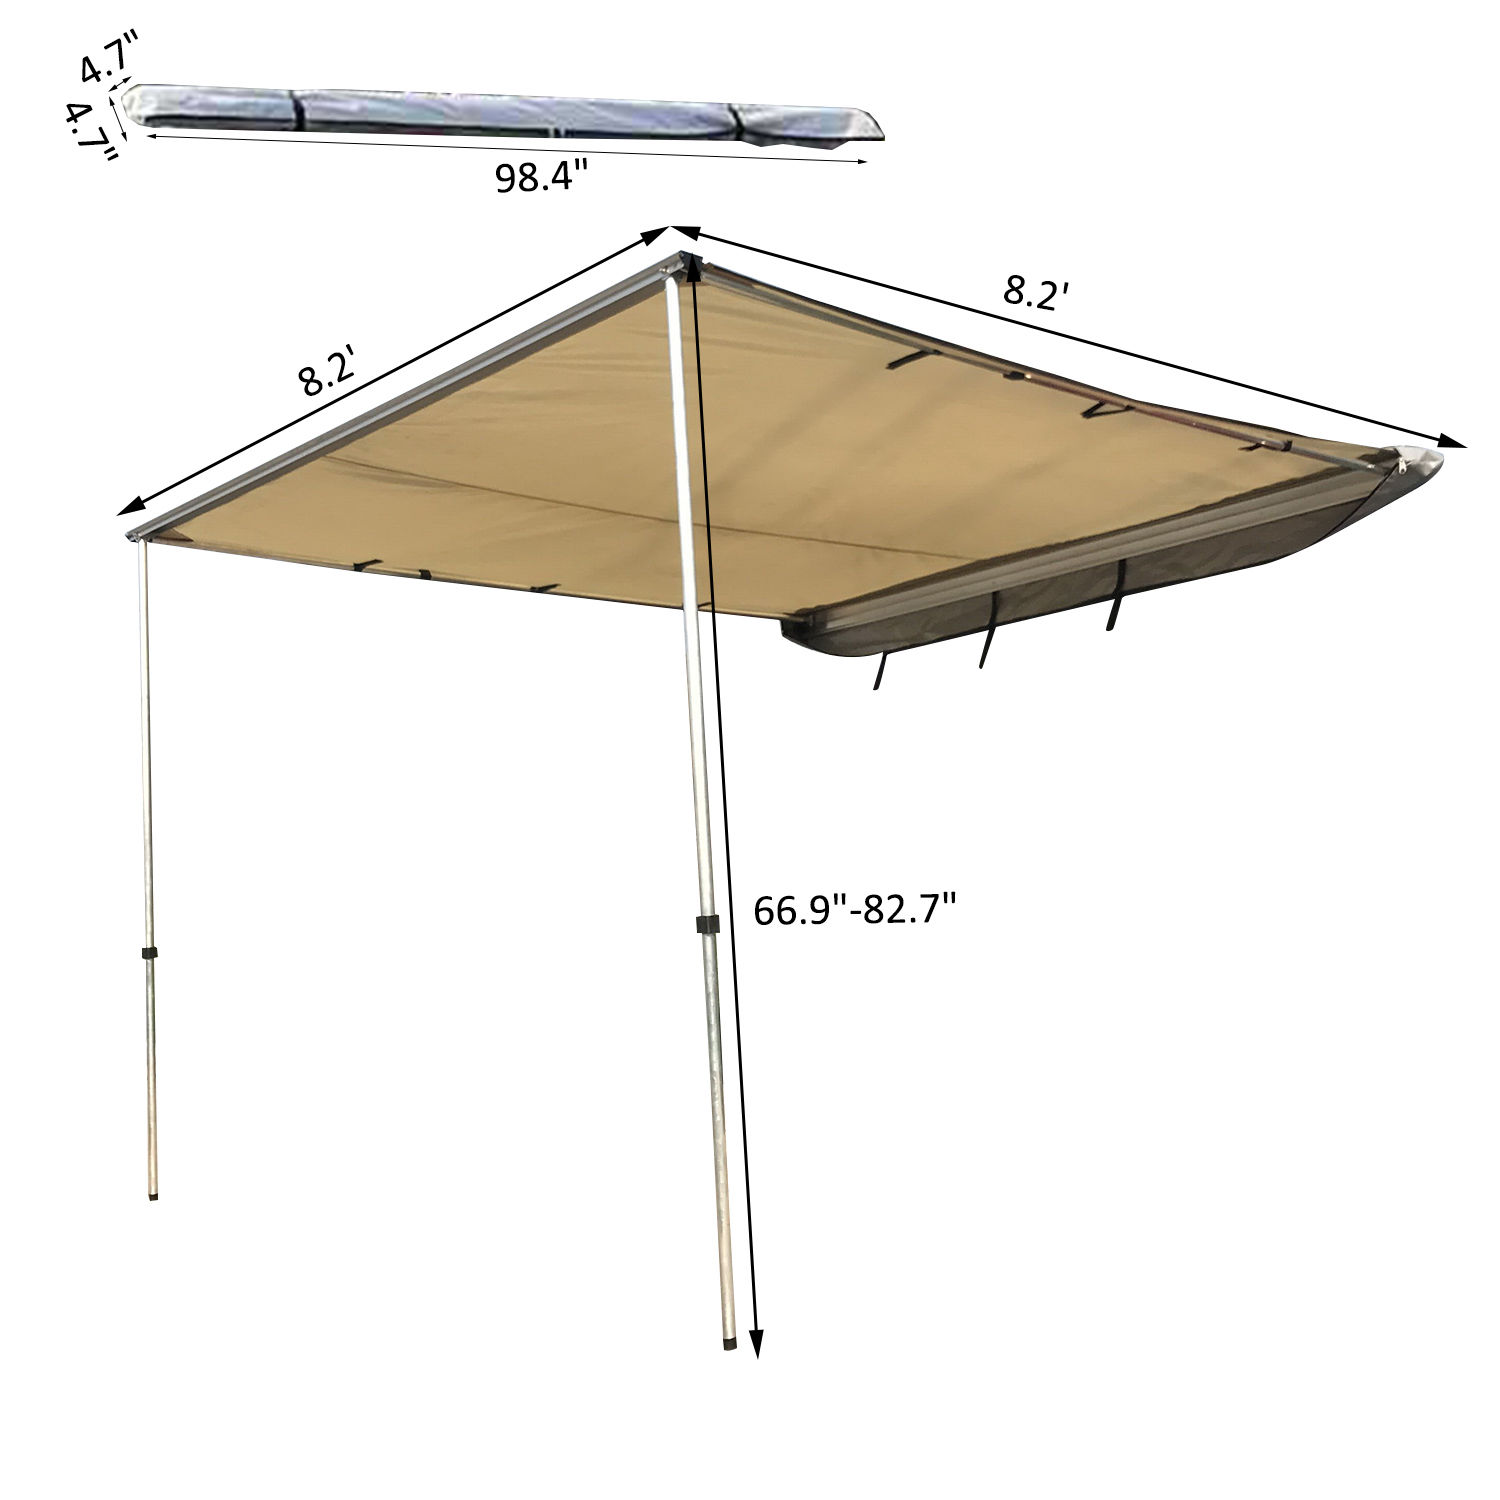 tarp camping canopy boutique triangle tents awning and awnings tent image sandstone bell